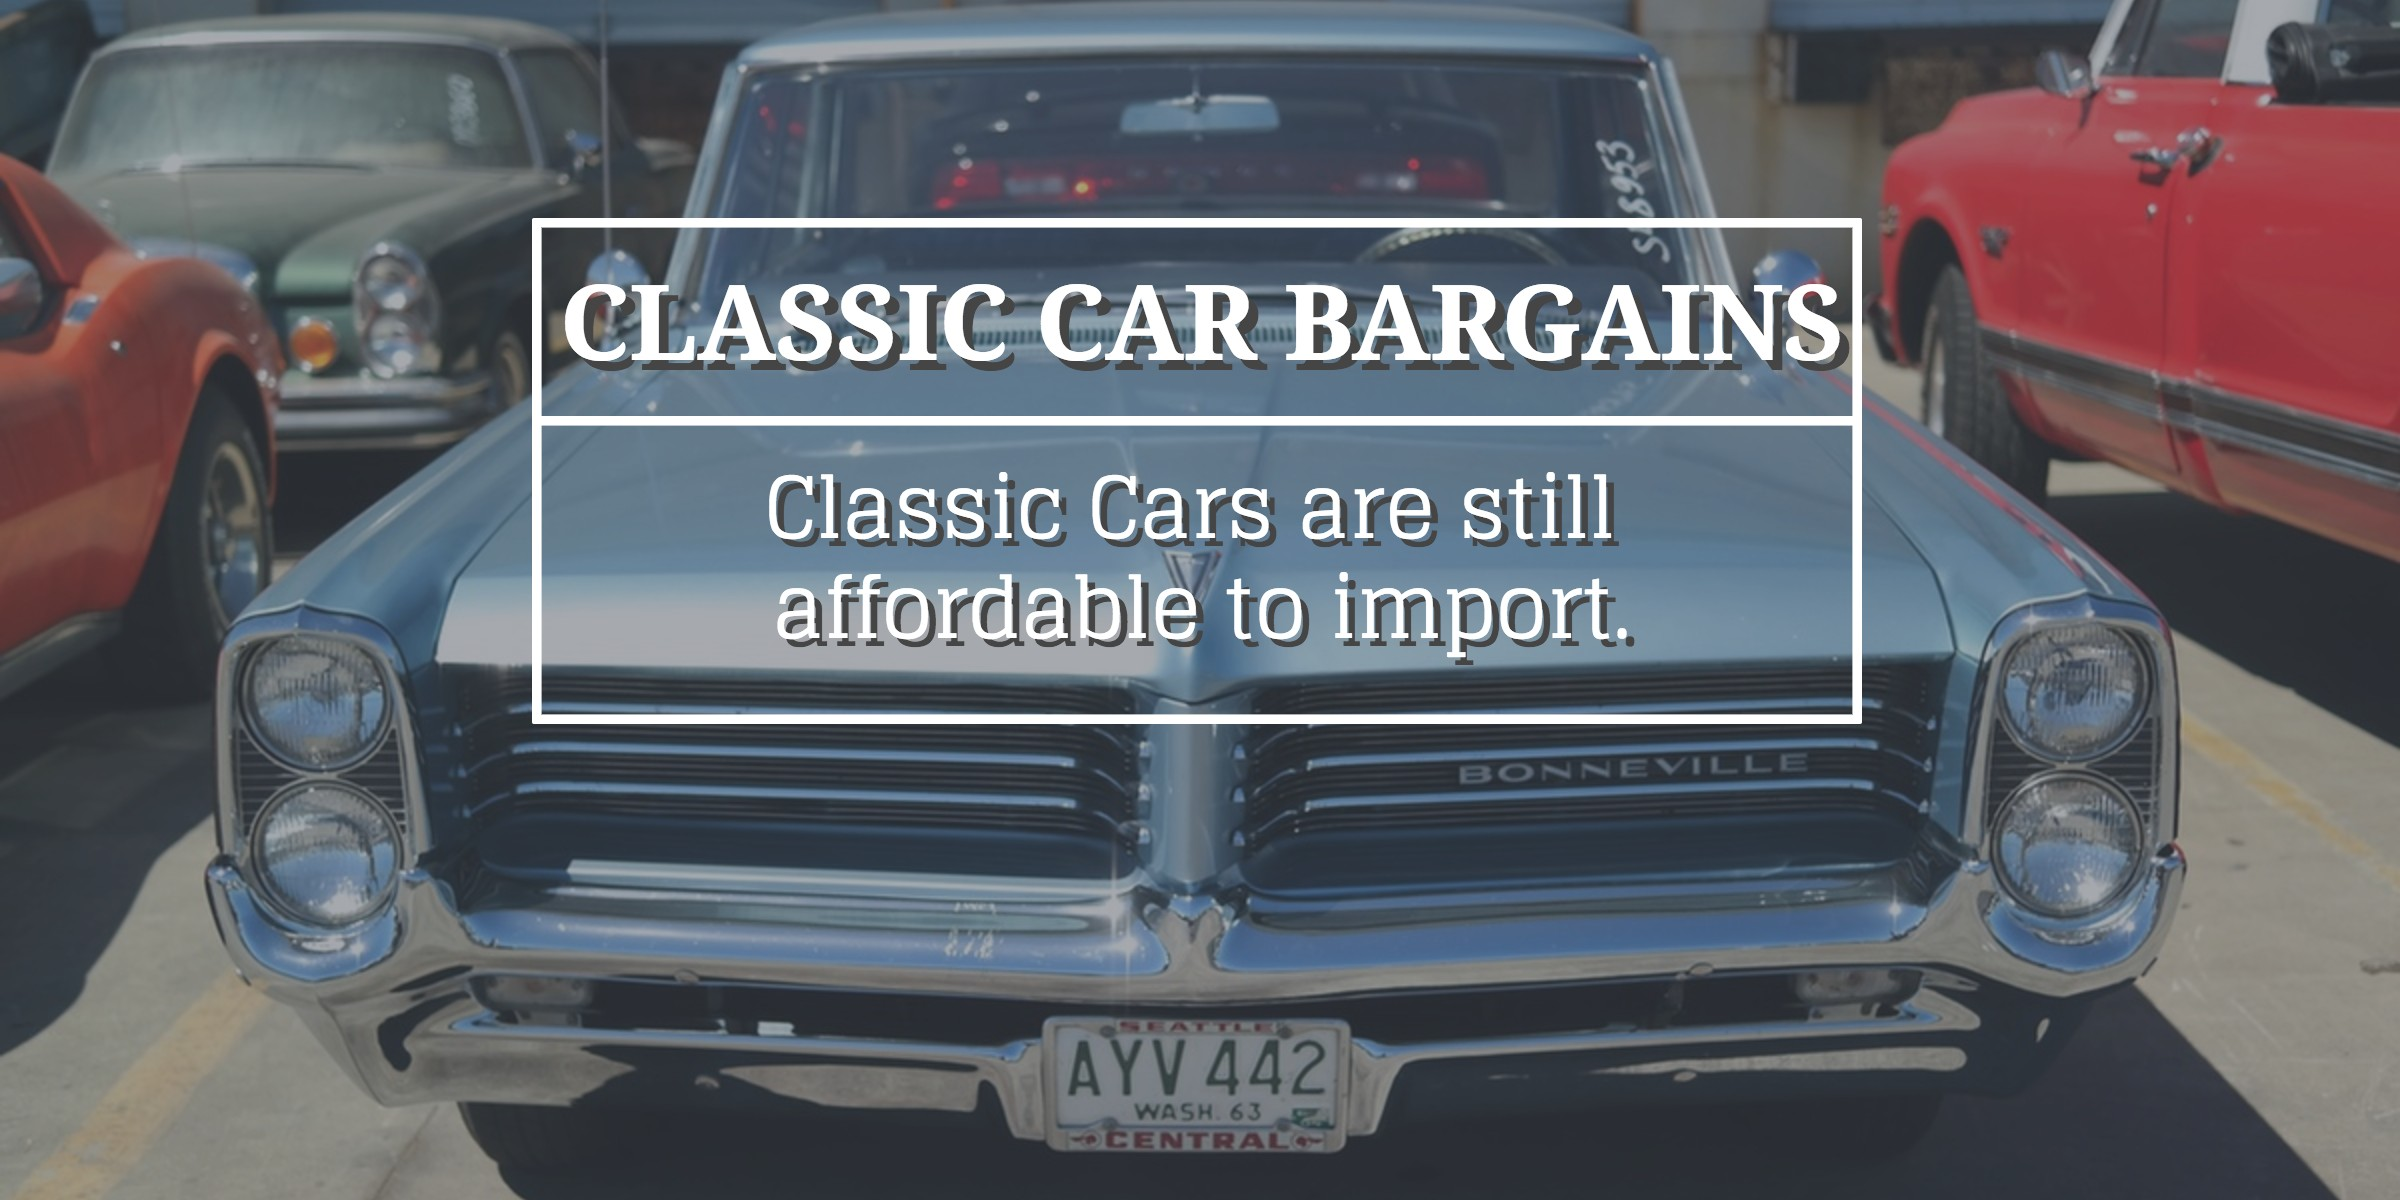 Classic cars from the USA are still affordable